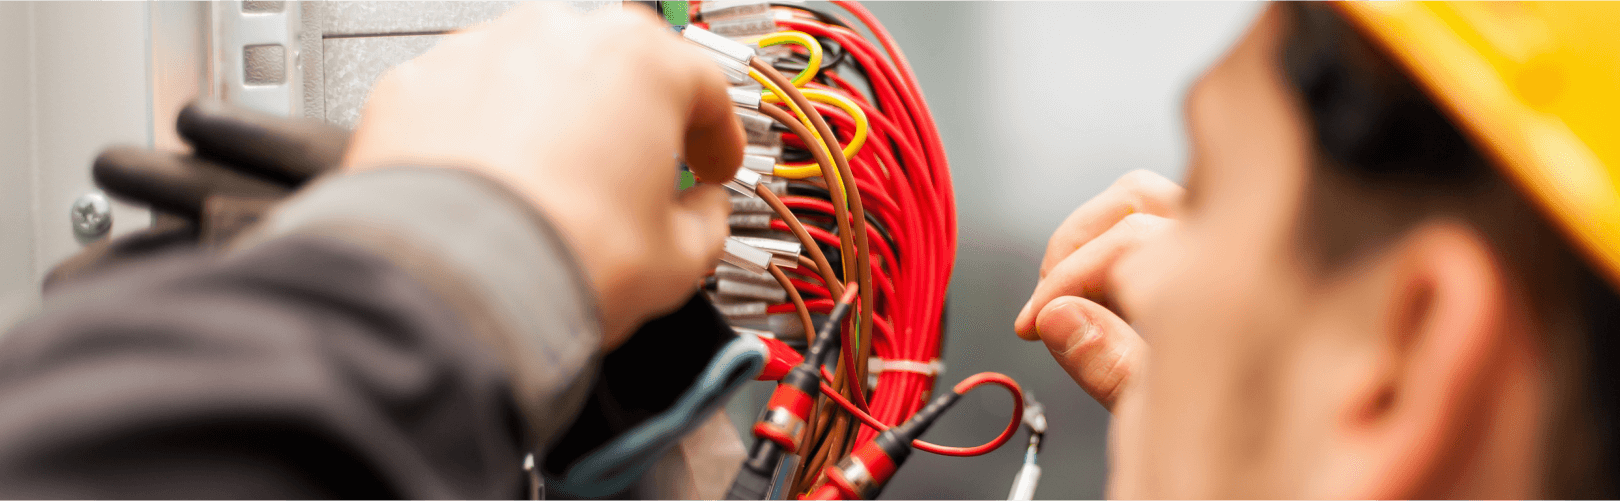 Wiring | Electricians Service Team